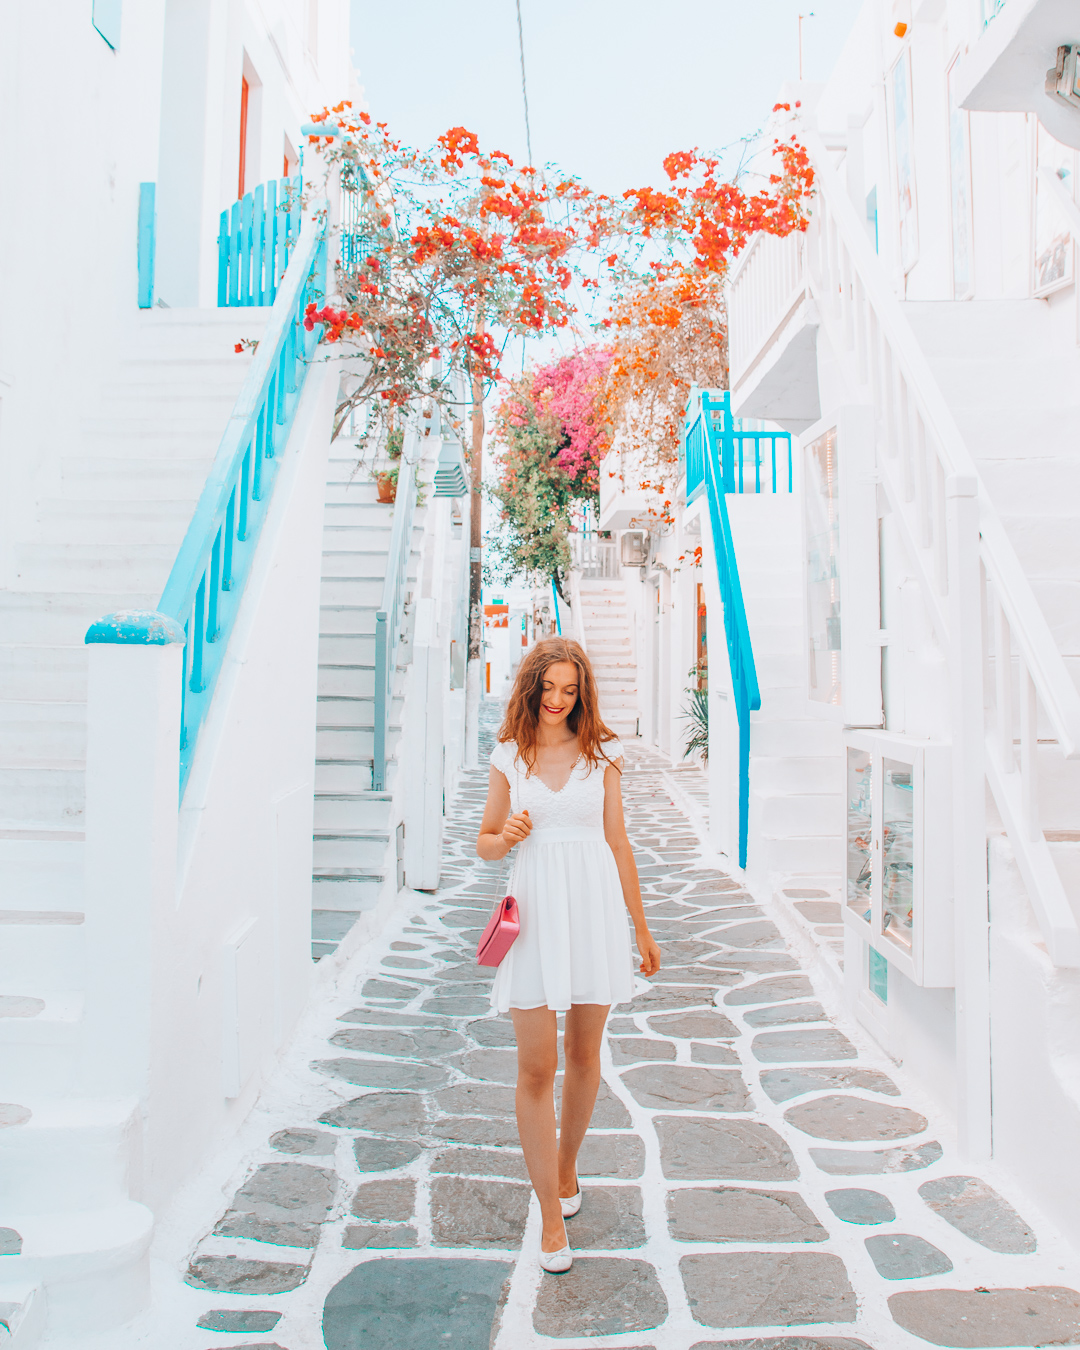 Happy girl in street in Mykonos with cobblestones and flowers